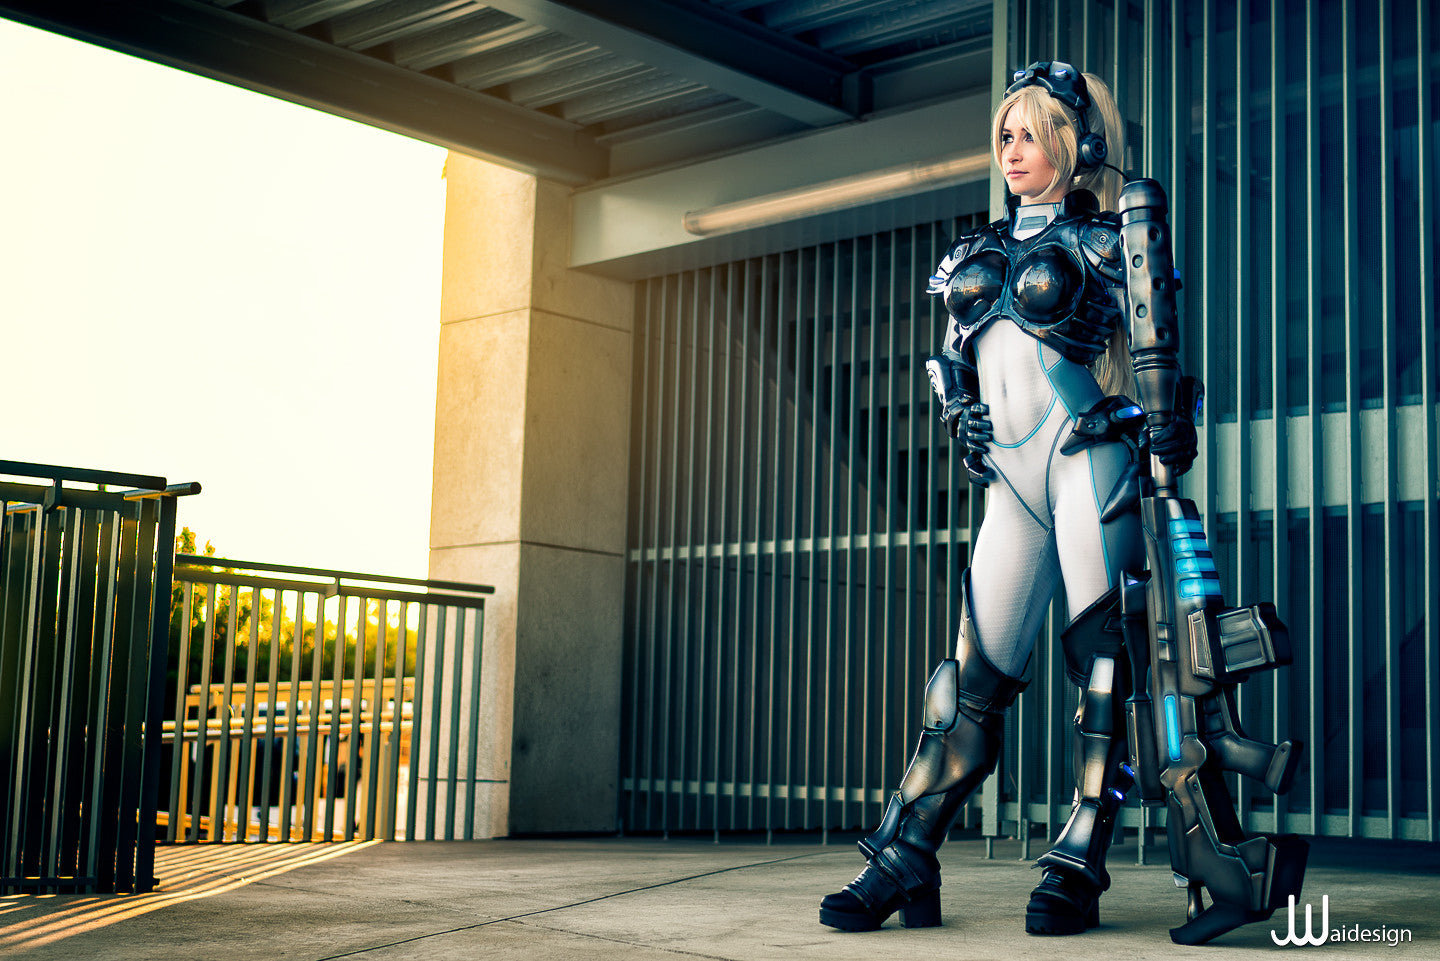 Is 3D Printing Changing The Way People Cosplay?